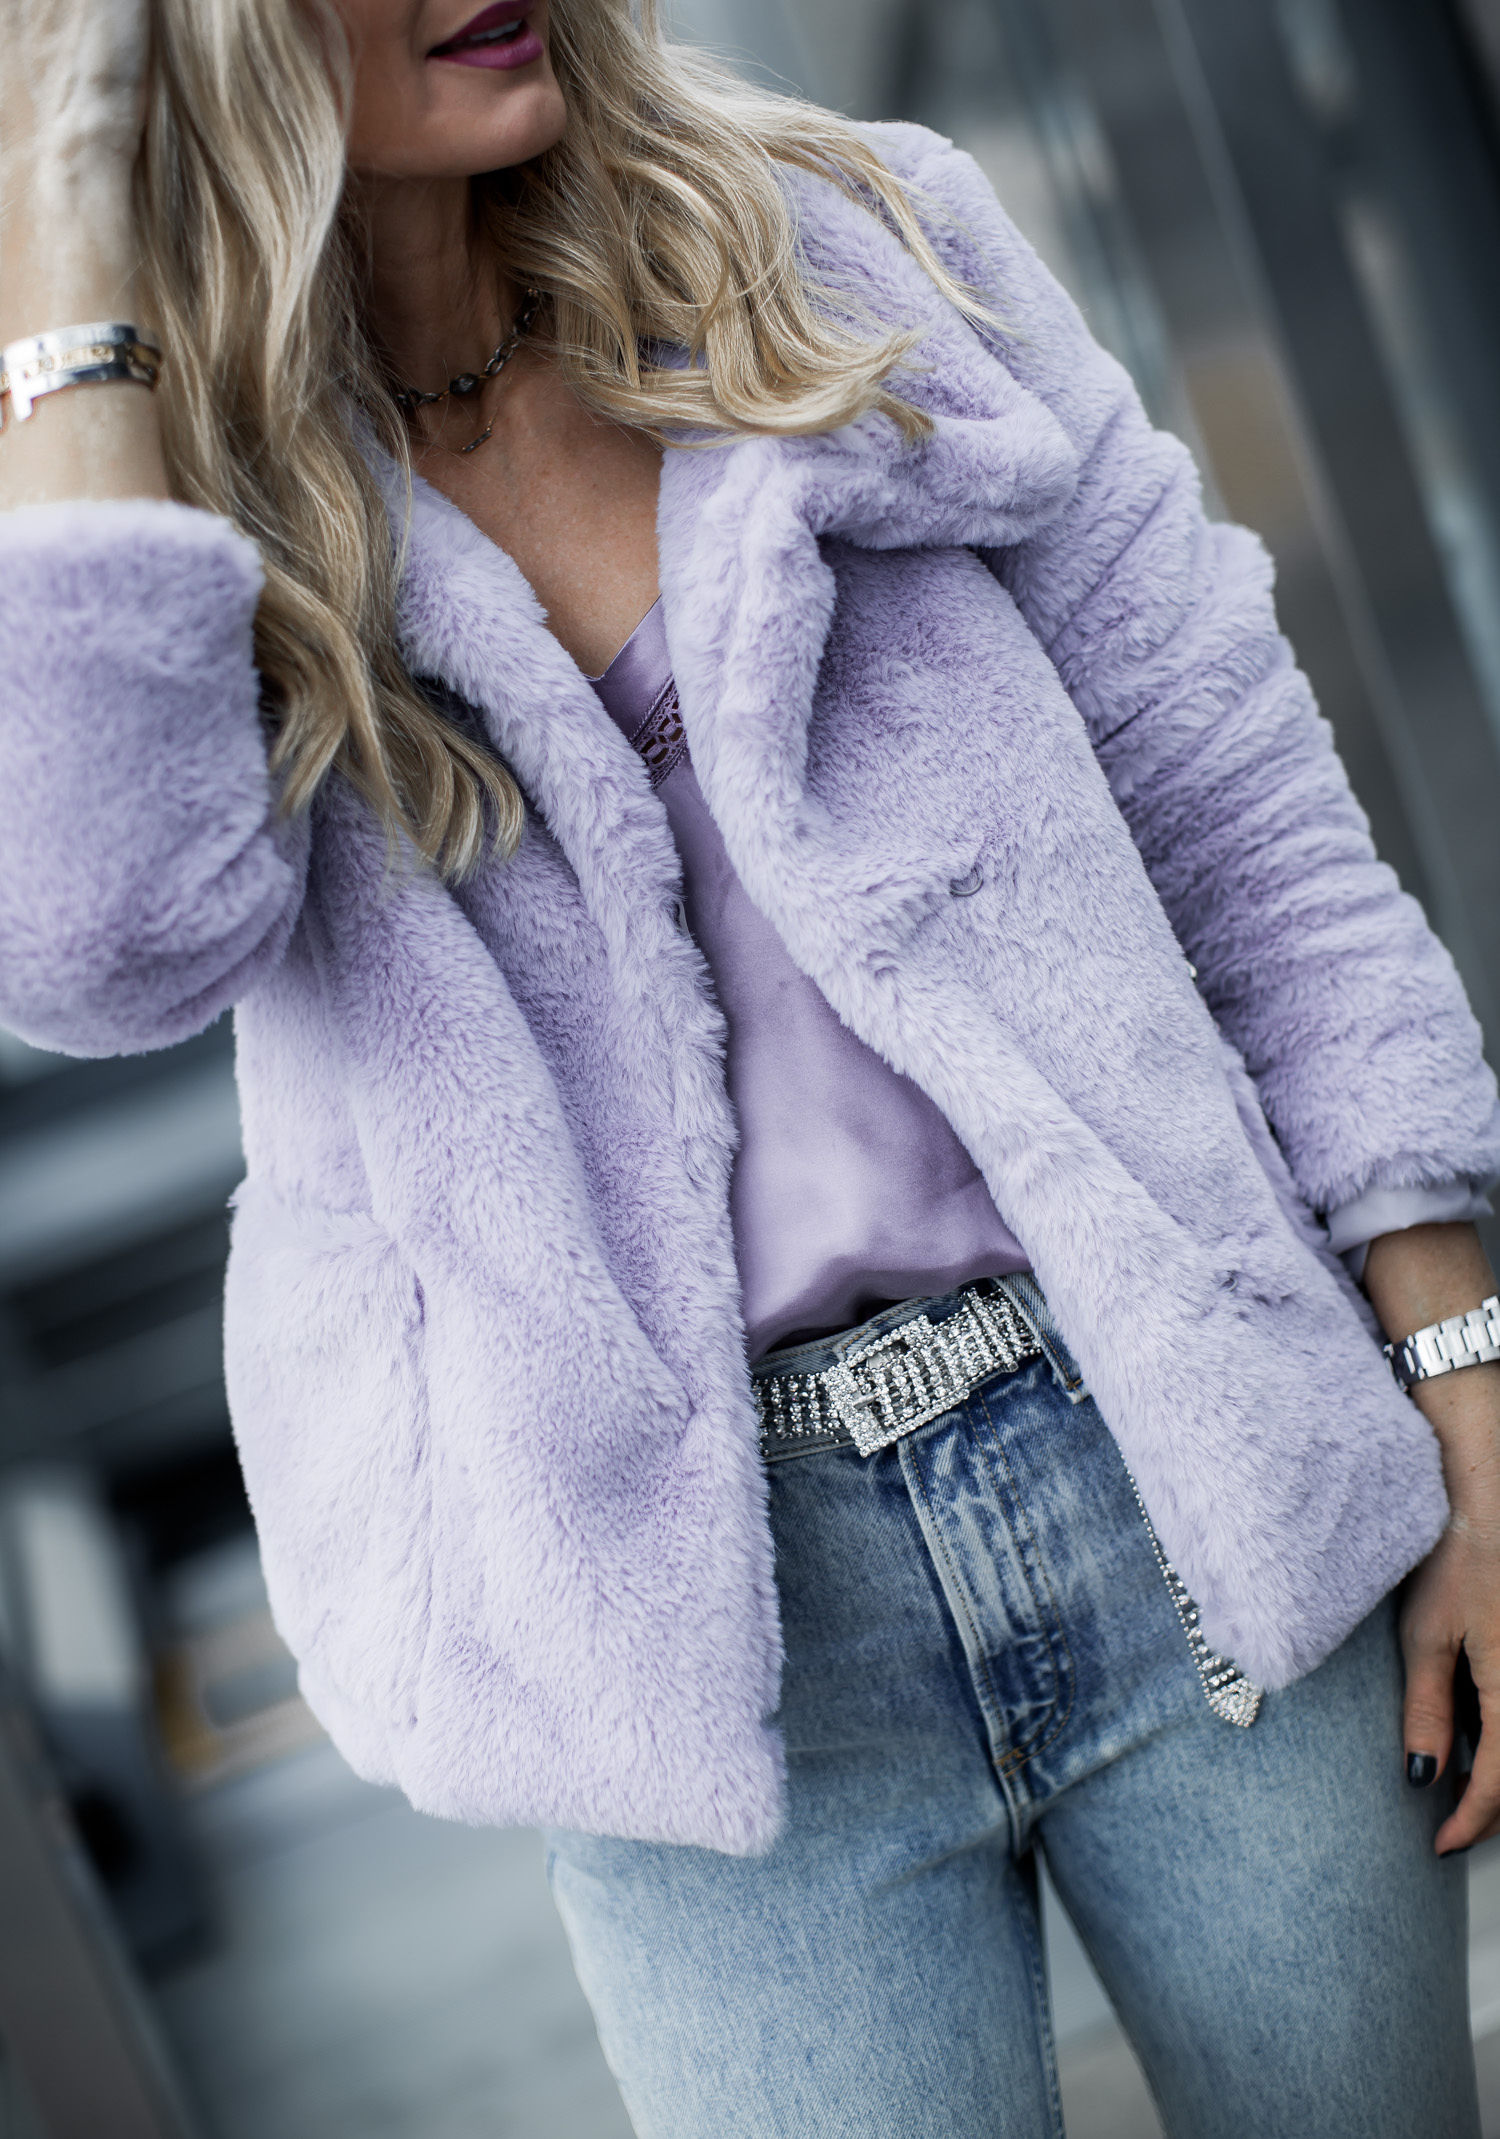 Dallas fashion blogger wearing lavender faux fur jacket and mom jeans